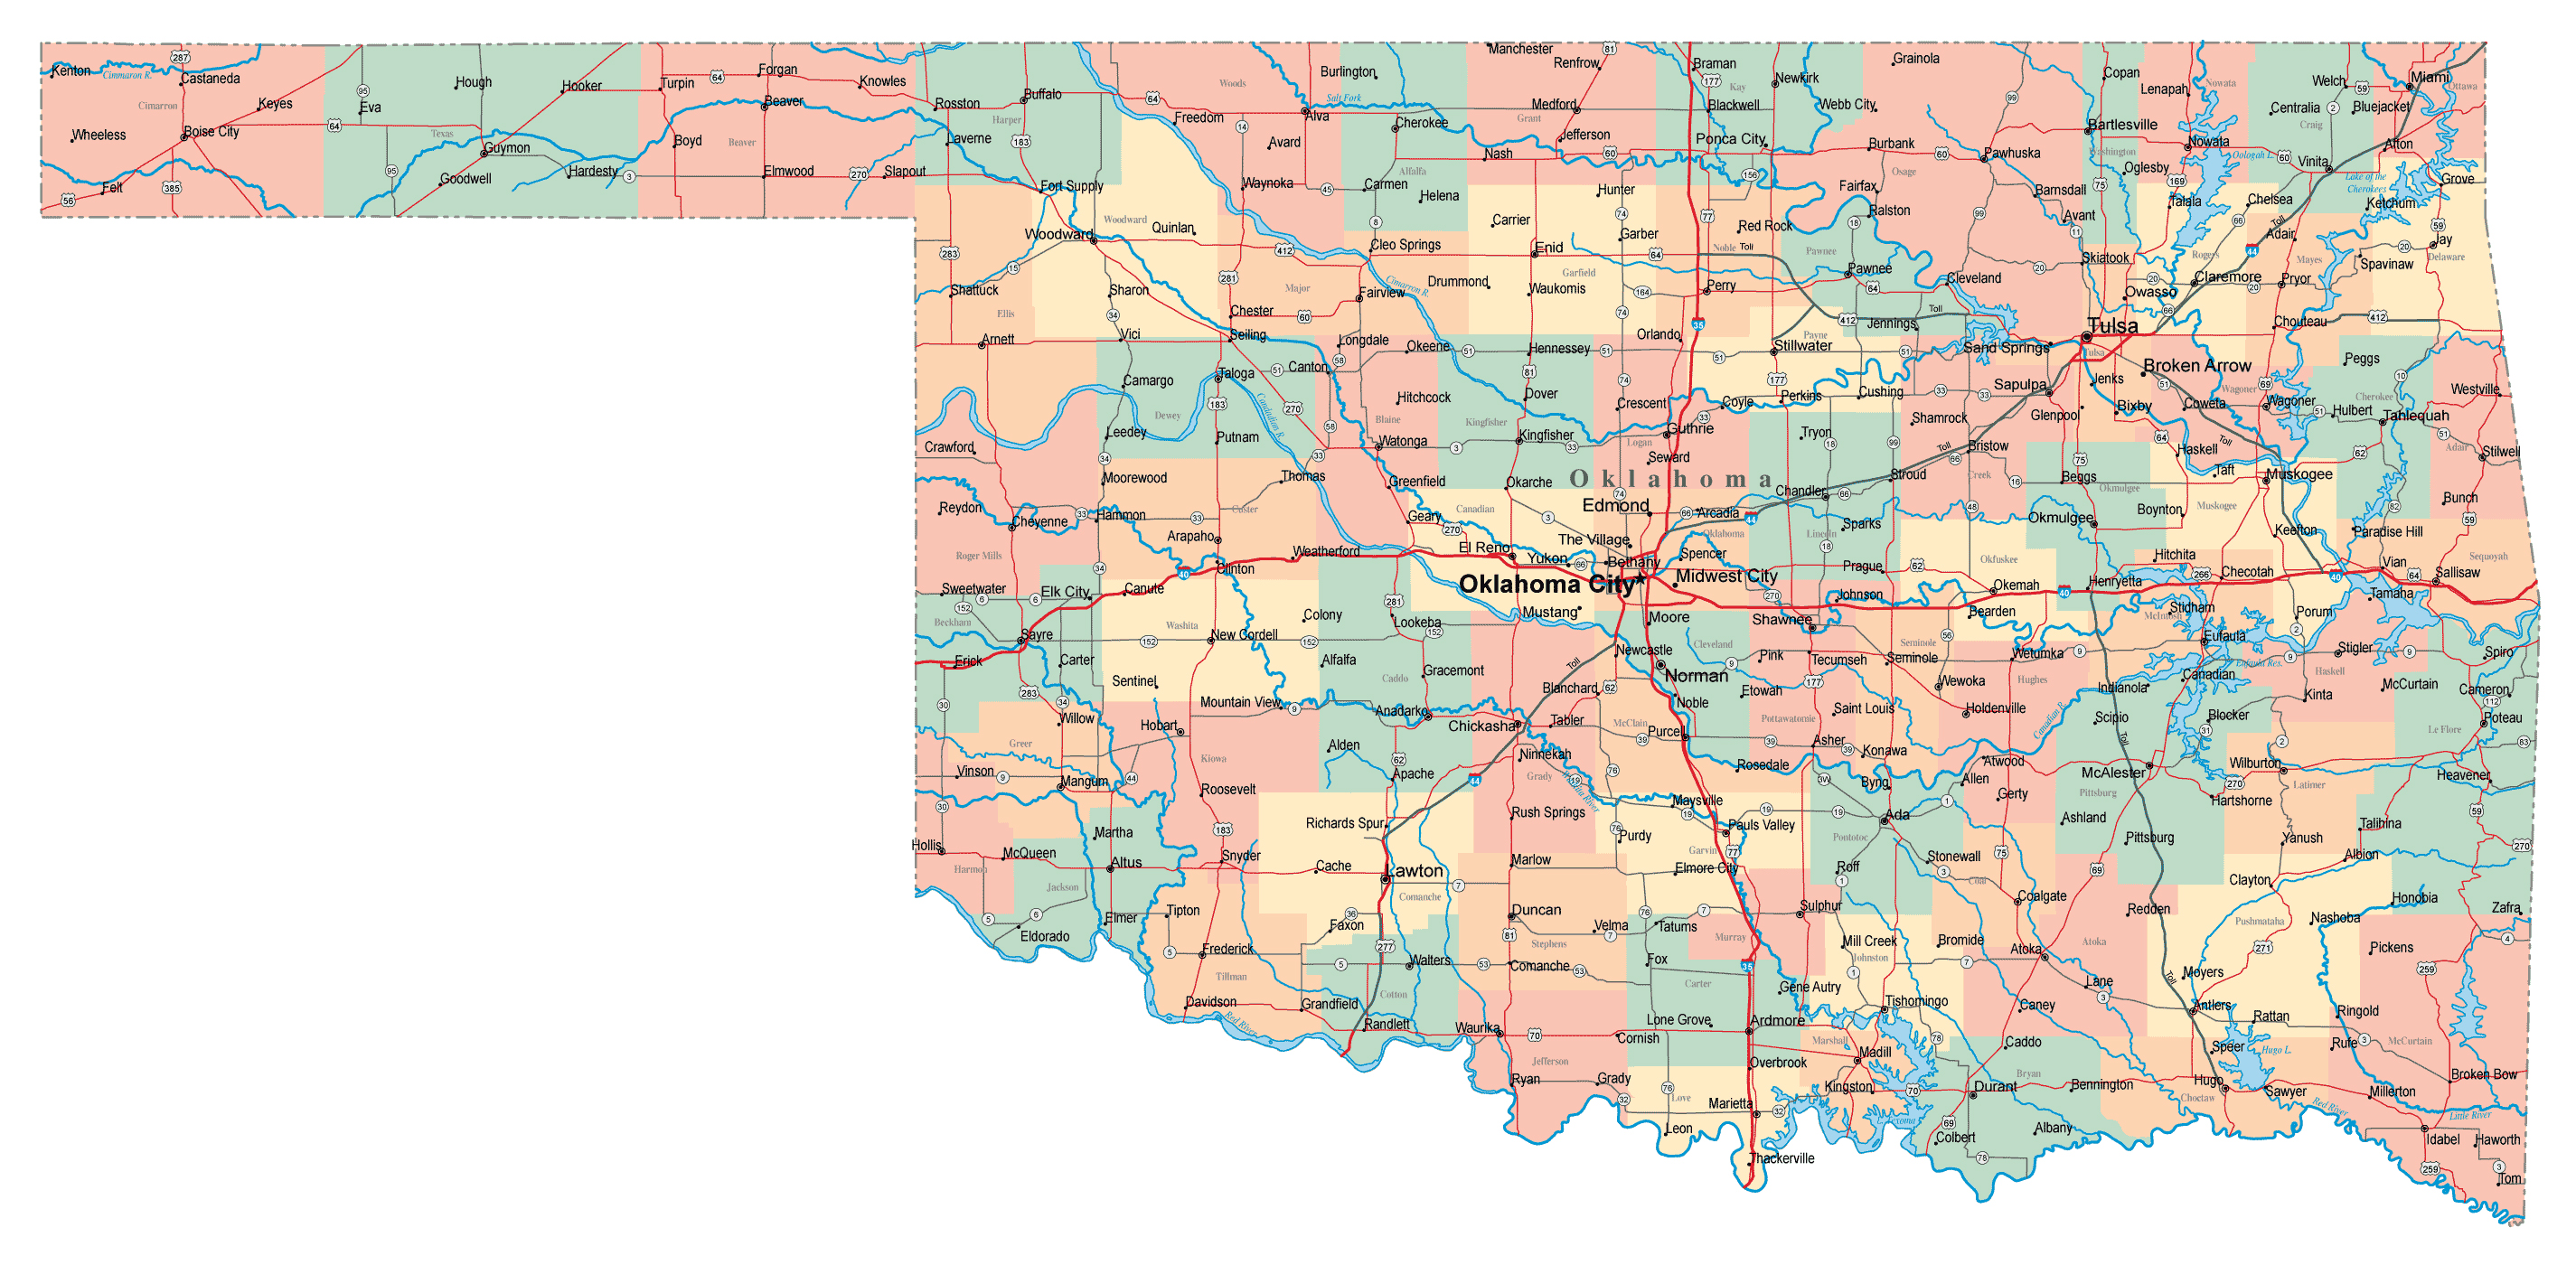 state map of oklahoma with highways Large Administrative Map Of Oklahoma State With Roads Highways